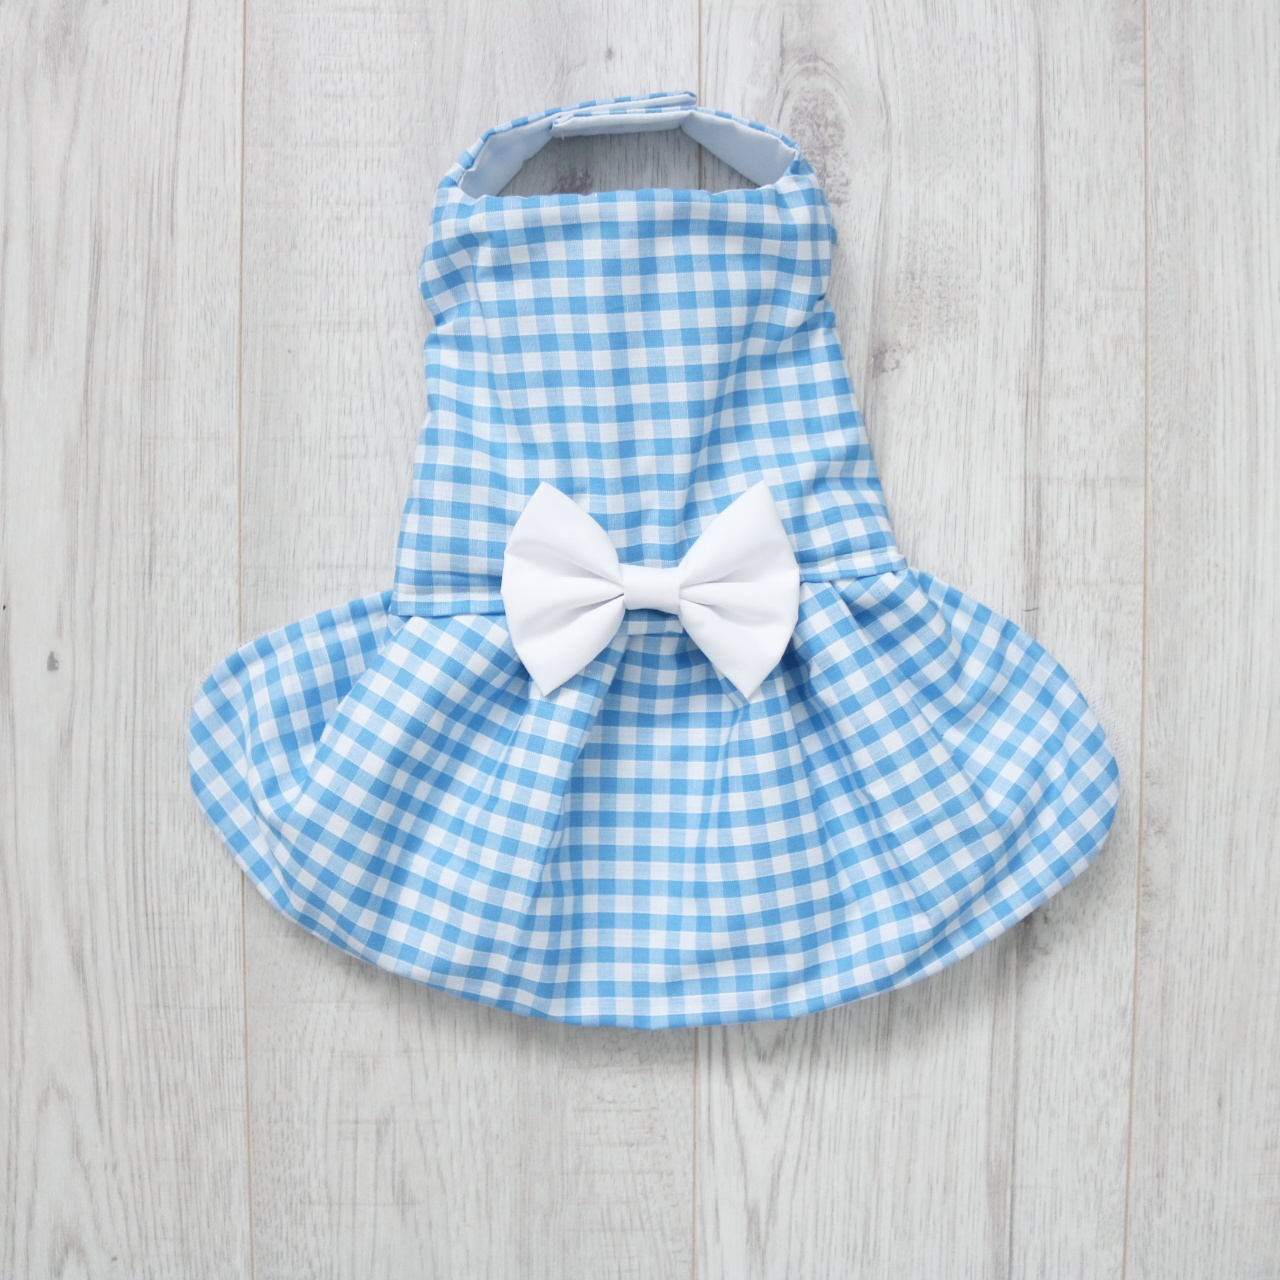 Blue and white gingham dog dress